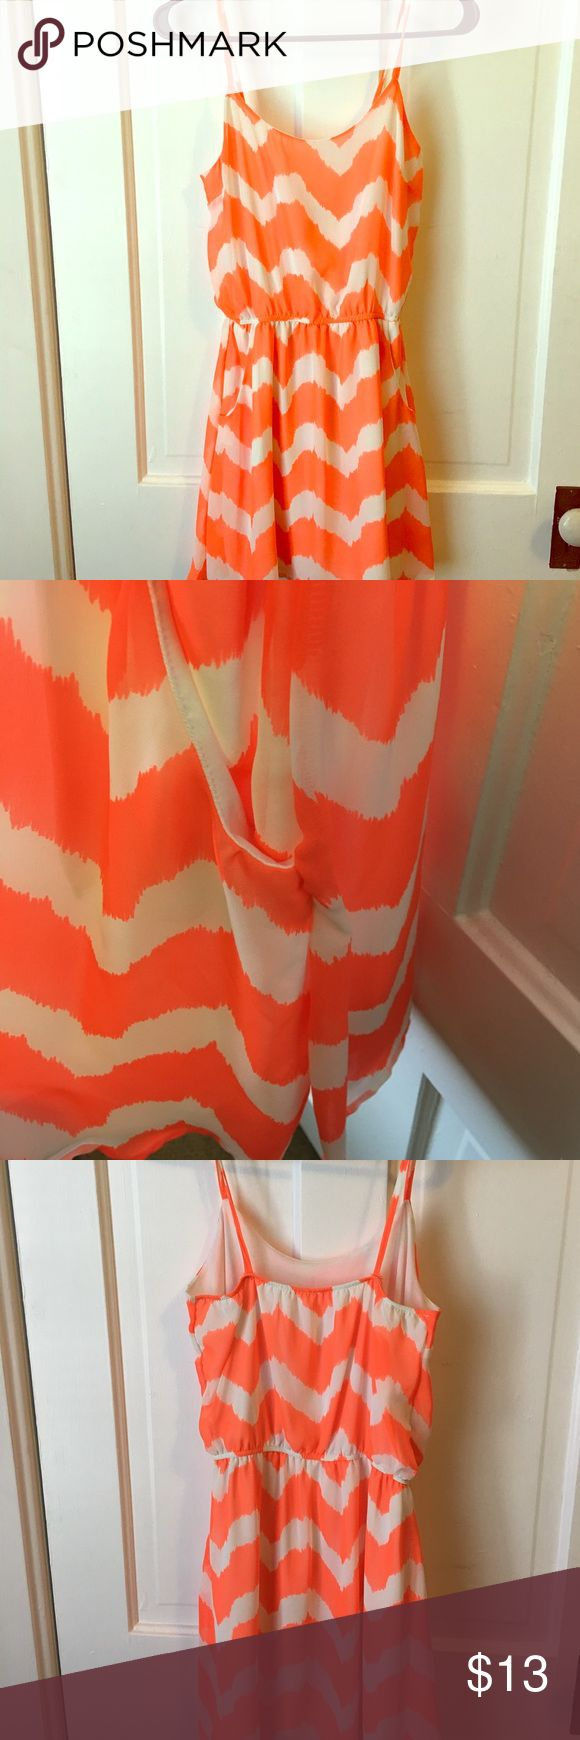 Chevron print dress from Francesca's closet. Miami brand dress from Francesca's Closet.  Worn maybe twice. Vibrant orange color and white.  Great color for spring/summer! miami Dresses